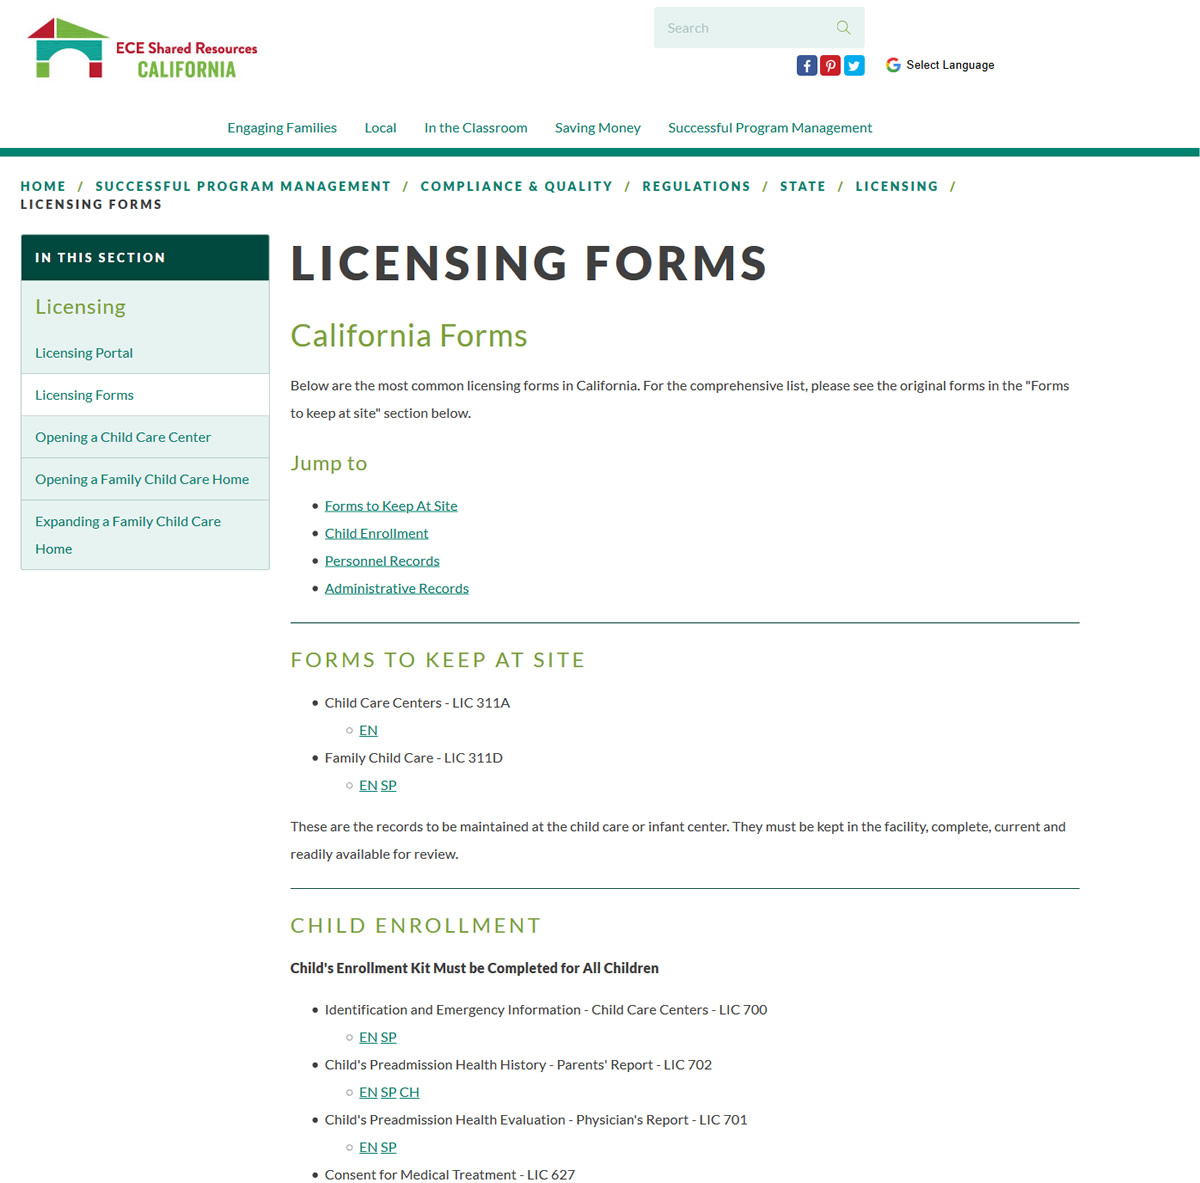 California Licensing Forms Page